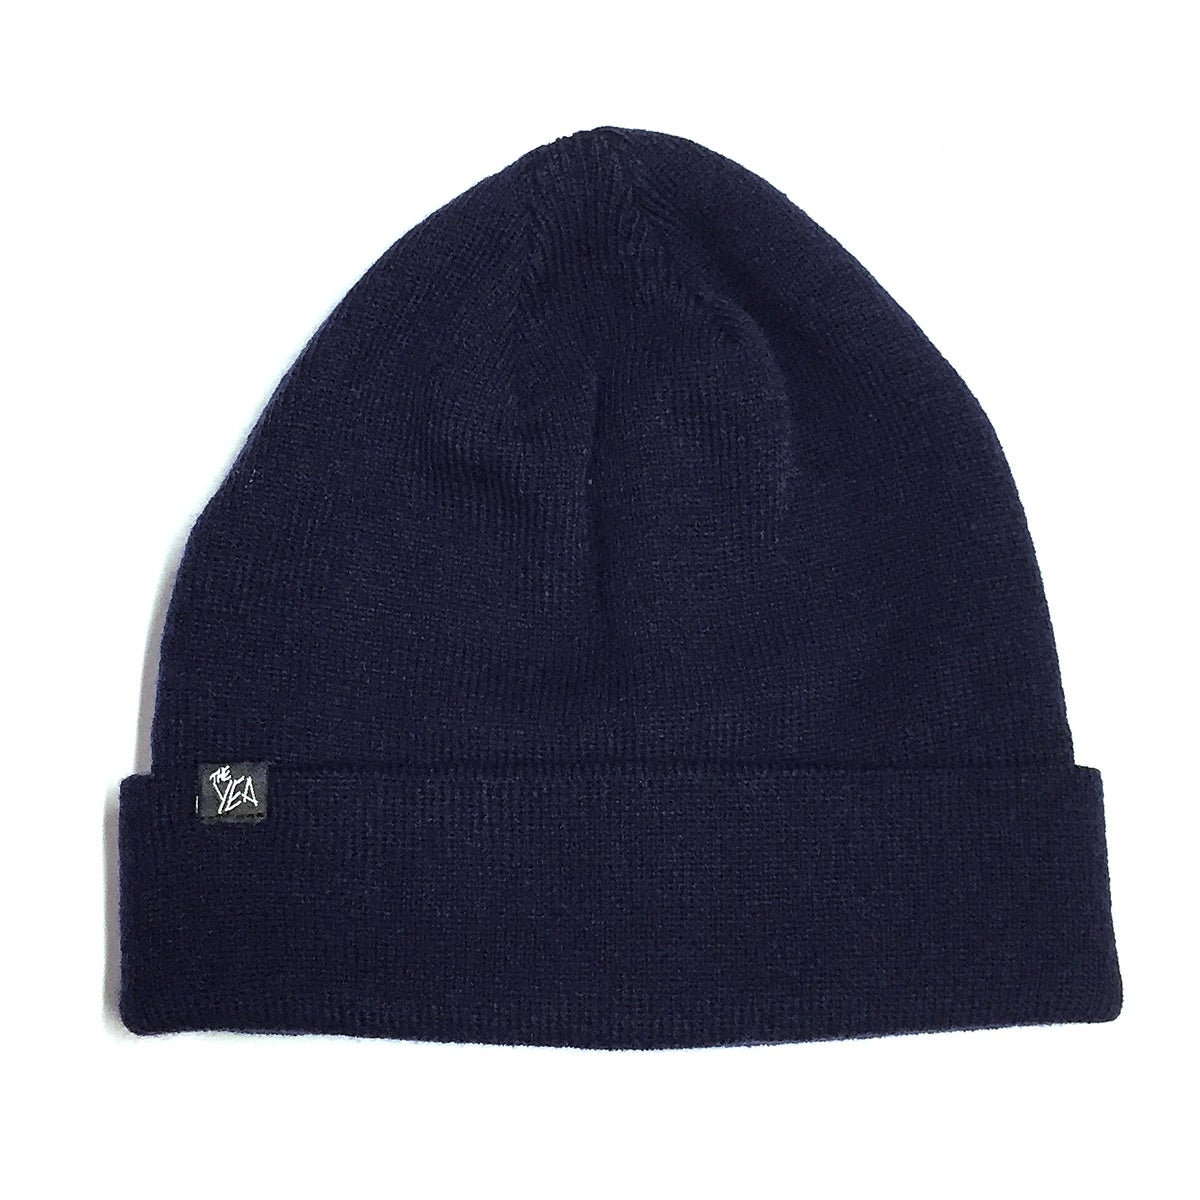 Image of Lil Yea Beanie